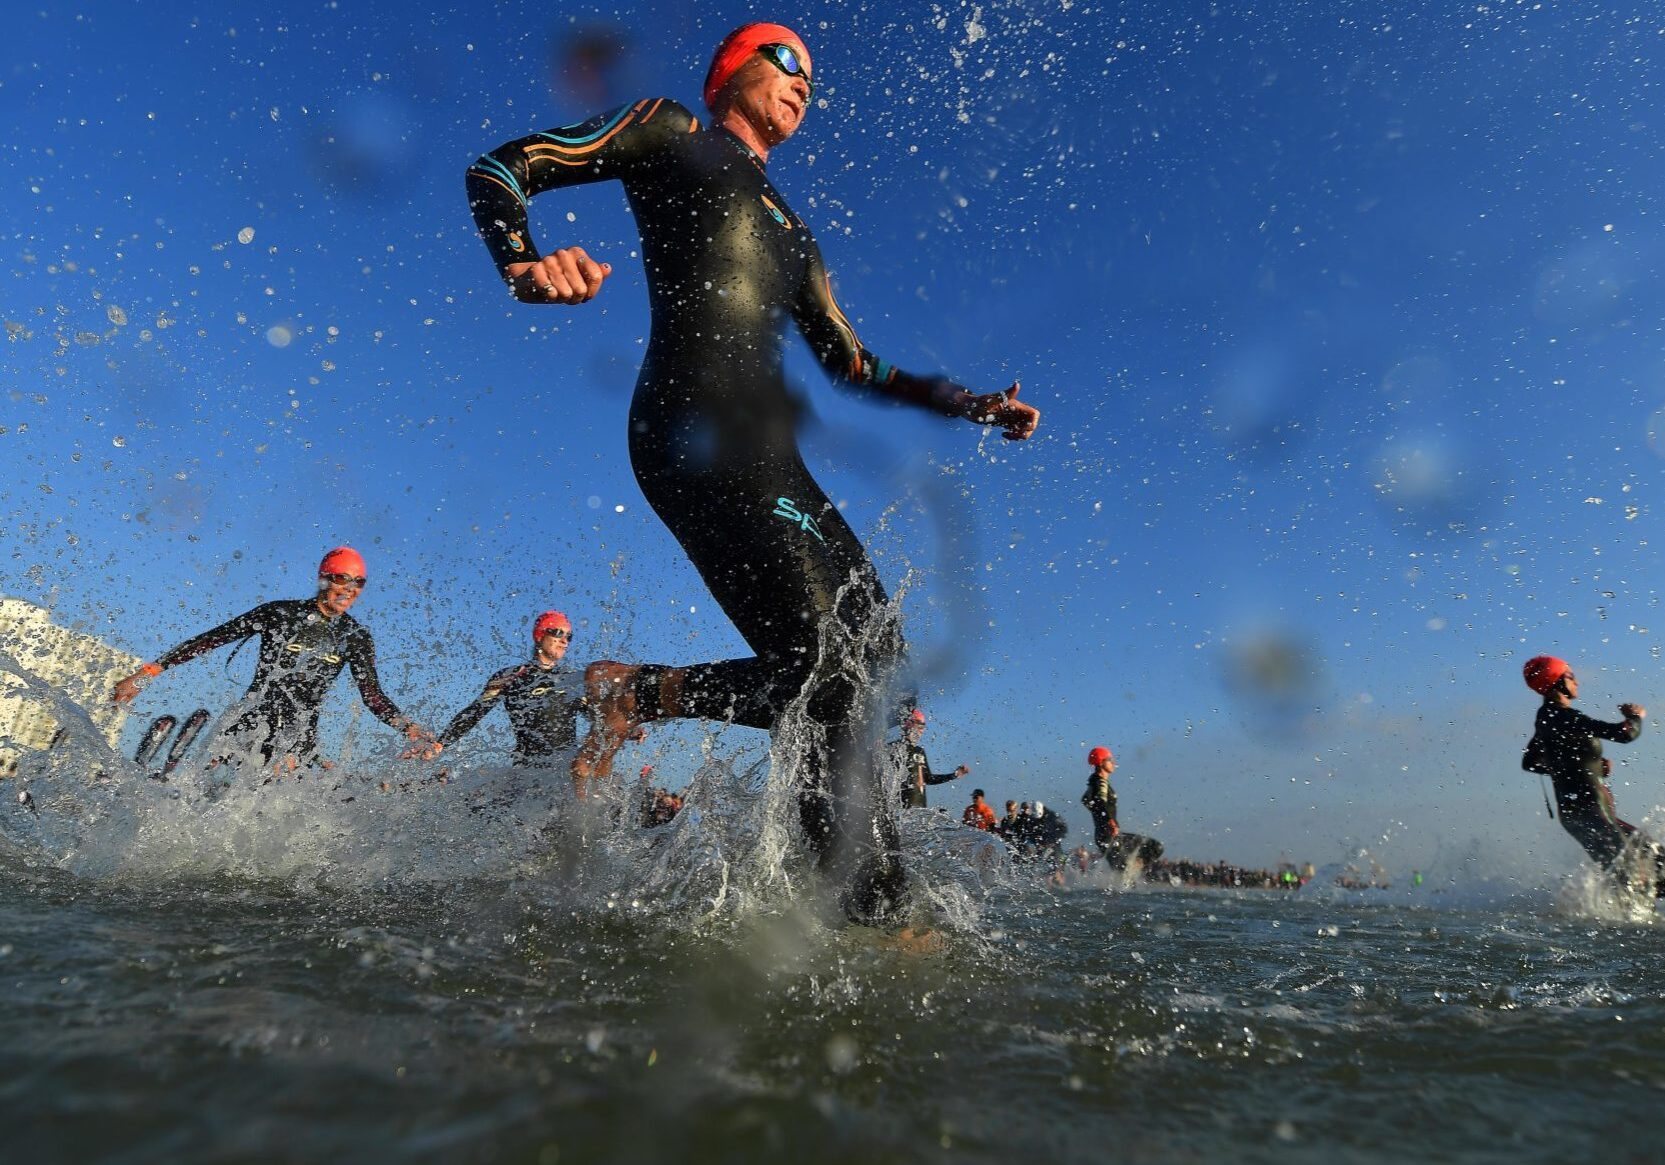 PORT ELIZABETH - SEPTEMBER 1:  General view of Age Group Athletes entering the water for the swim start during the Isuzu IRONMAN 70.3 World Championship Women in Port Elizabeth, South Africa on September 1, 2018. Over 4,500 athletes from over 100 countries will be represented in this years 70.3 World Championship. (Photo by Donald Miralle/Getty Images for IRONMAN).